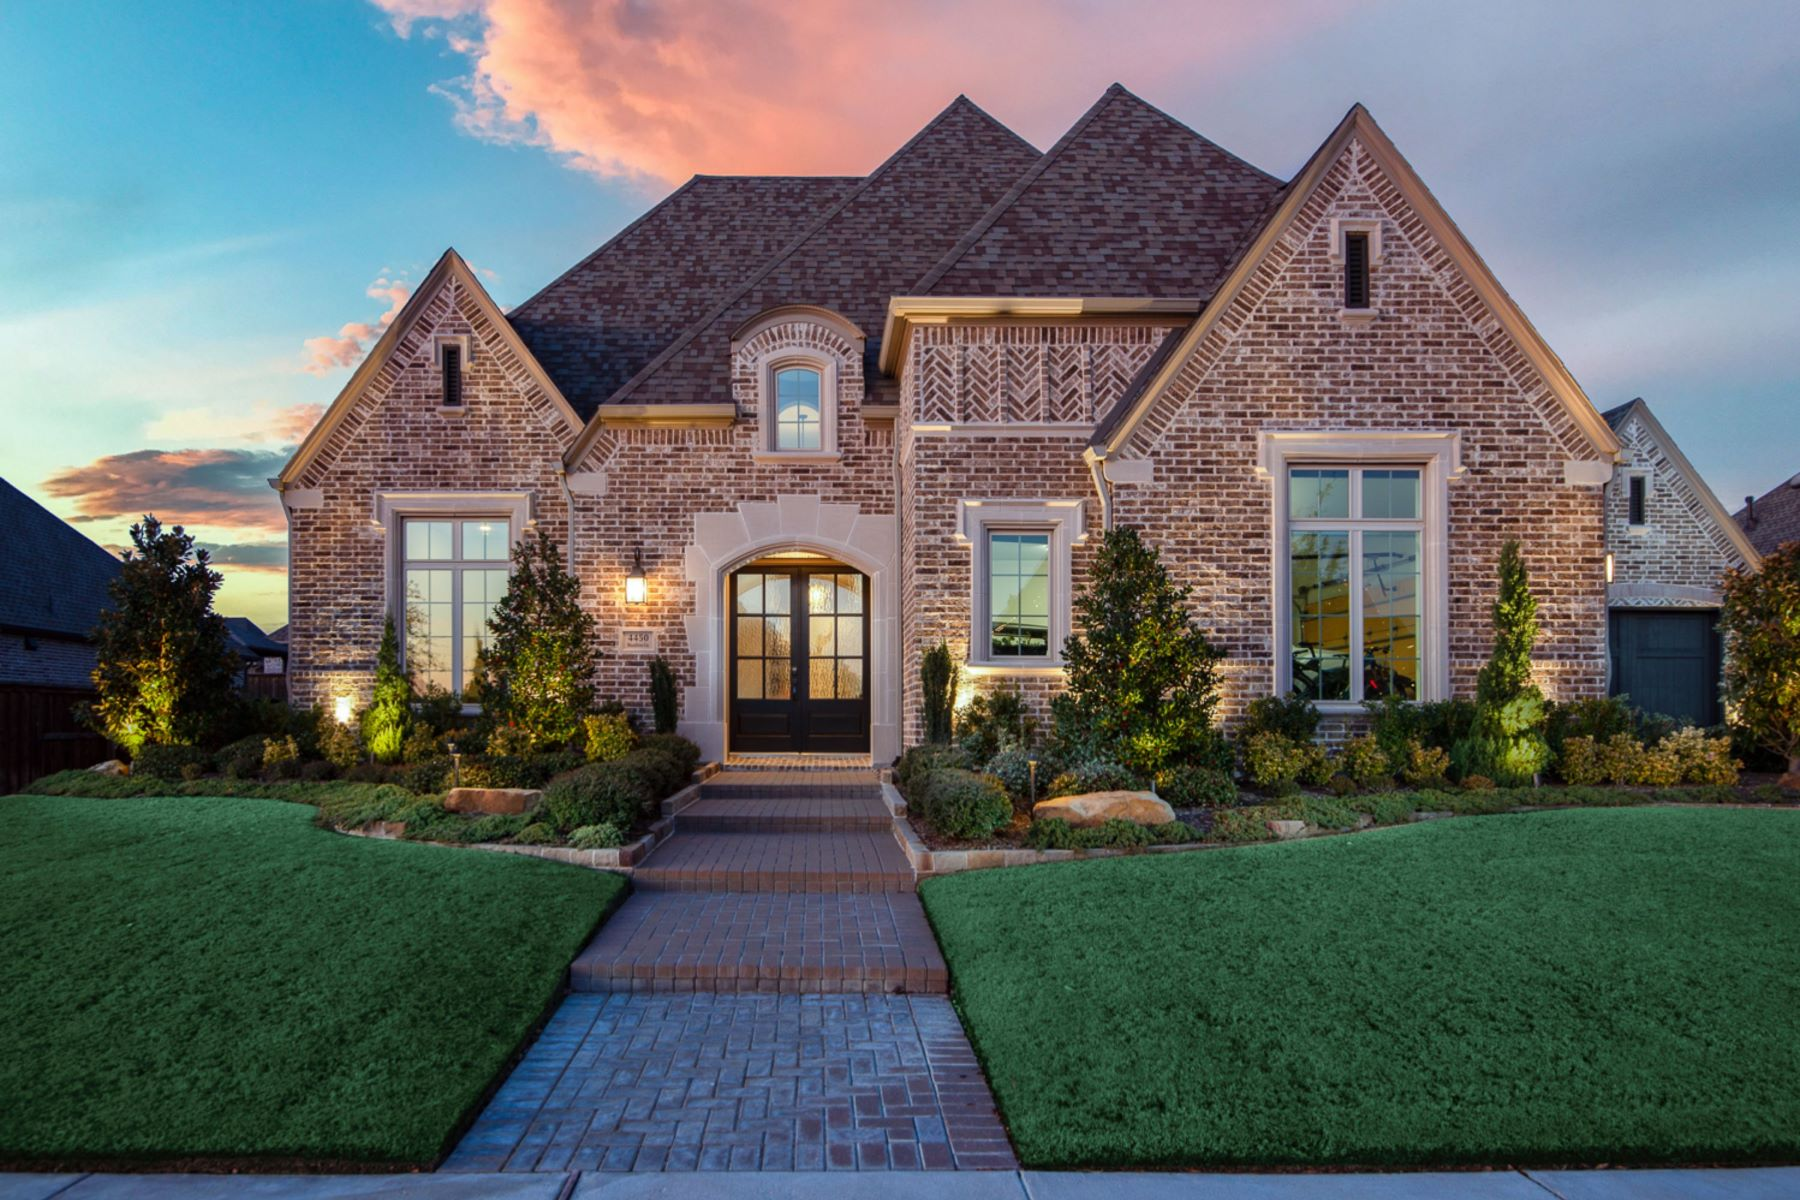 Single Family Homes for Sale at Pristine Semi Custom One-Story Home 4450 Woodbine Lane Prosper, Texas 75078 United States